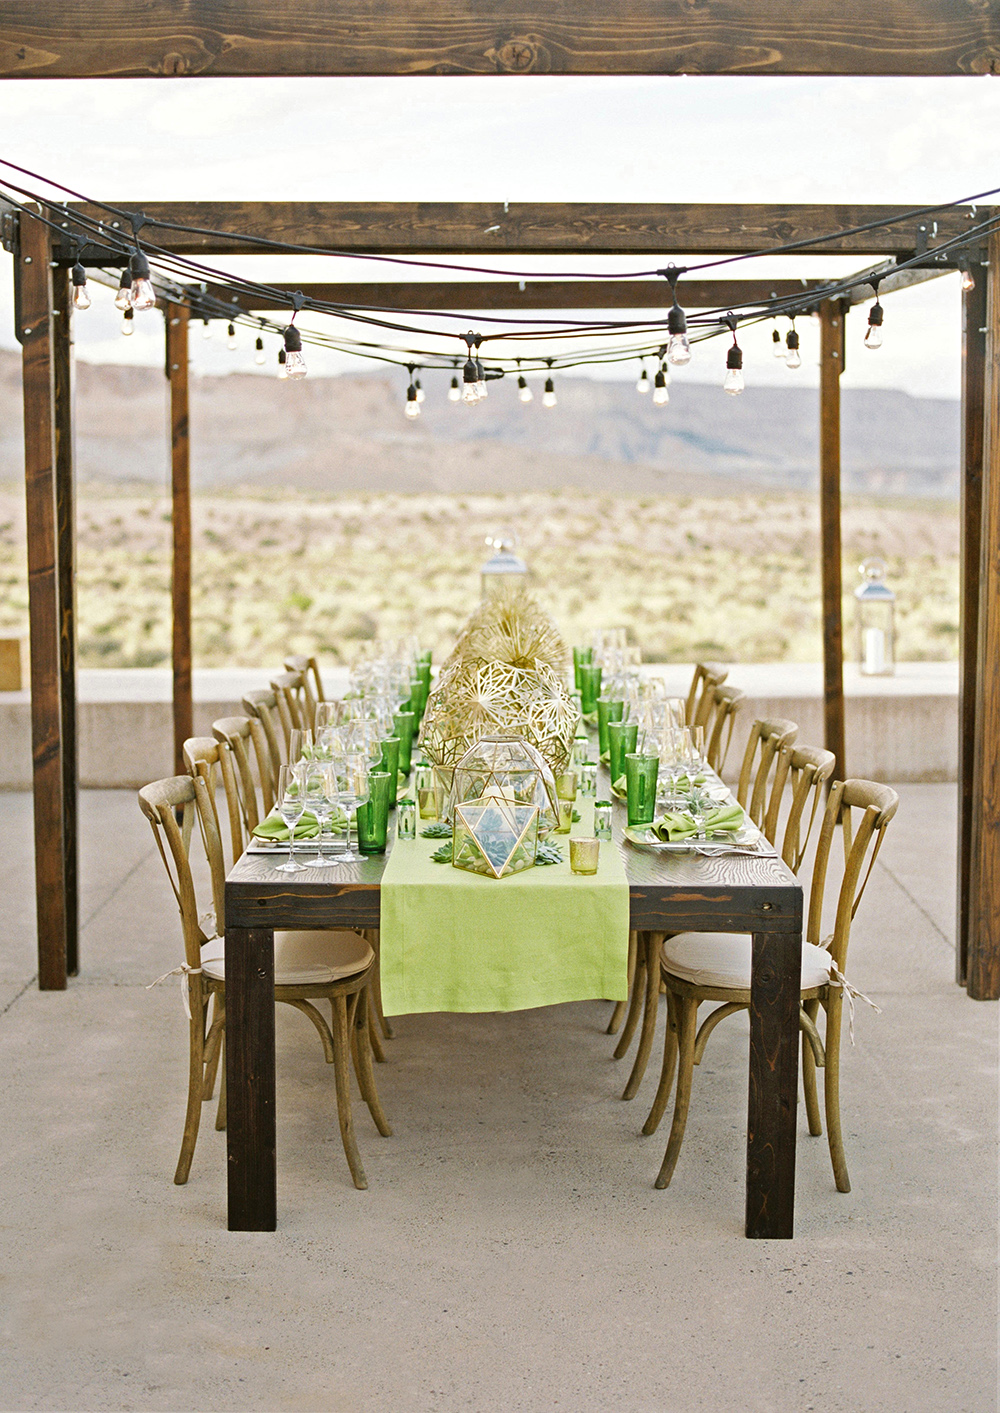 Desert dinner table